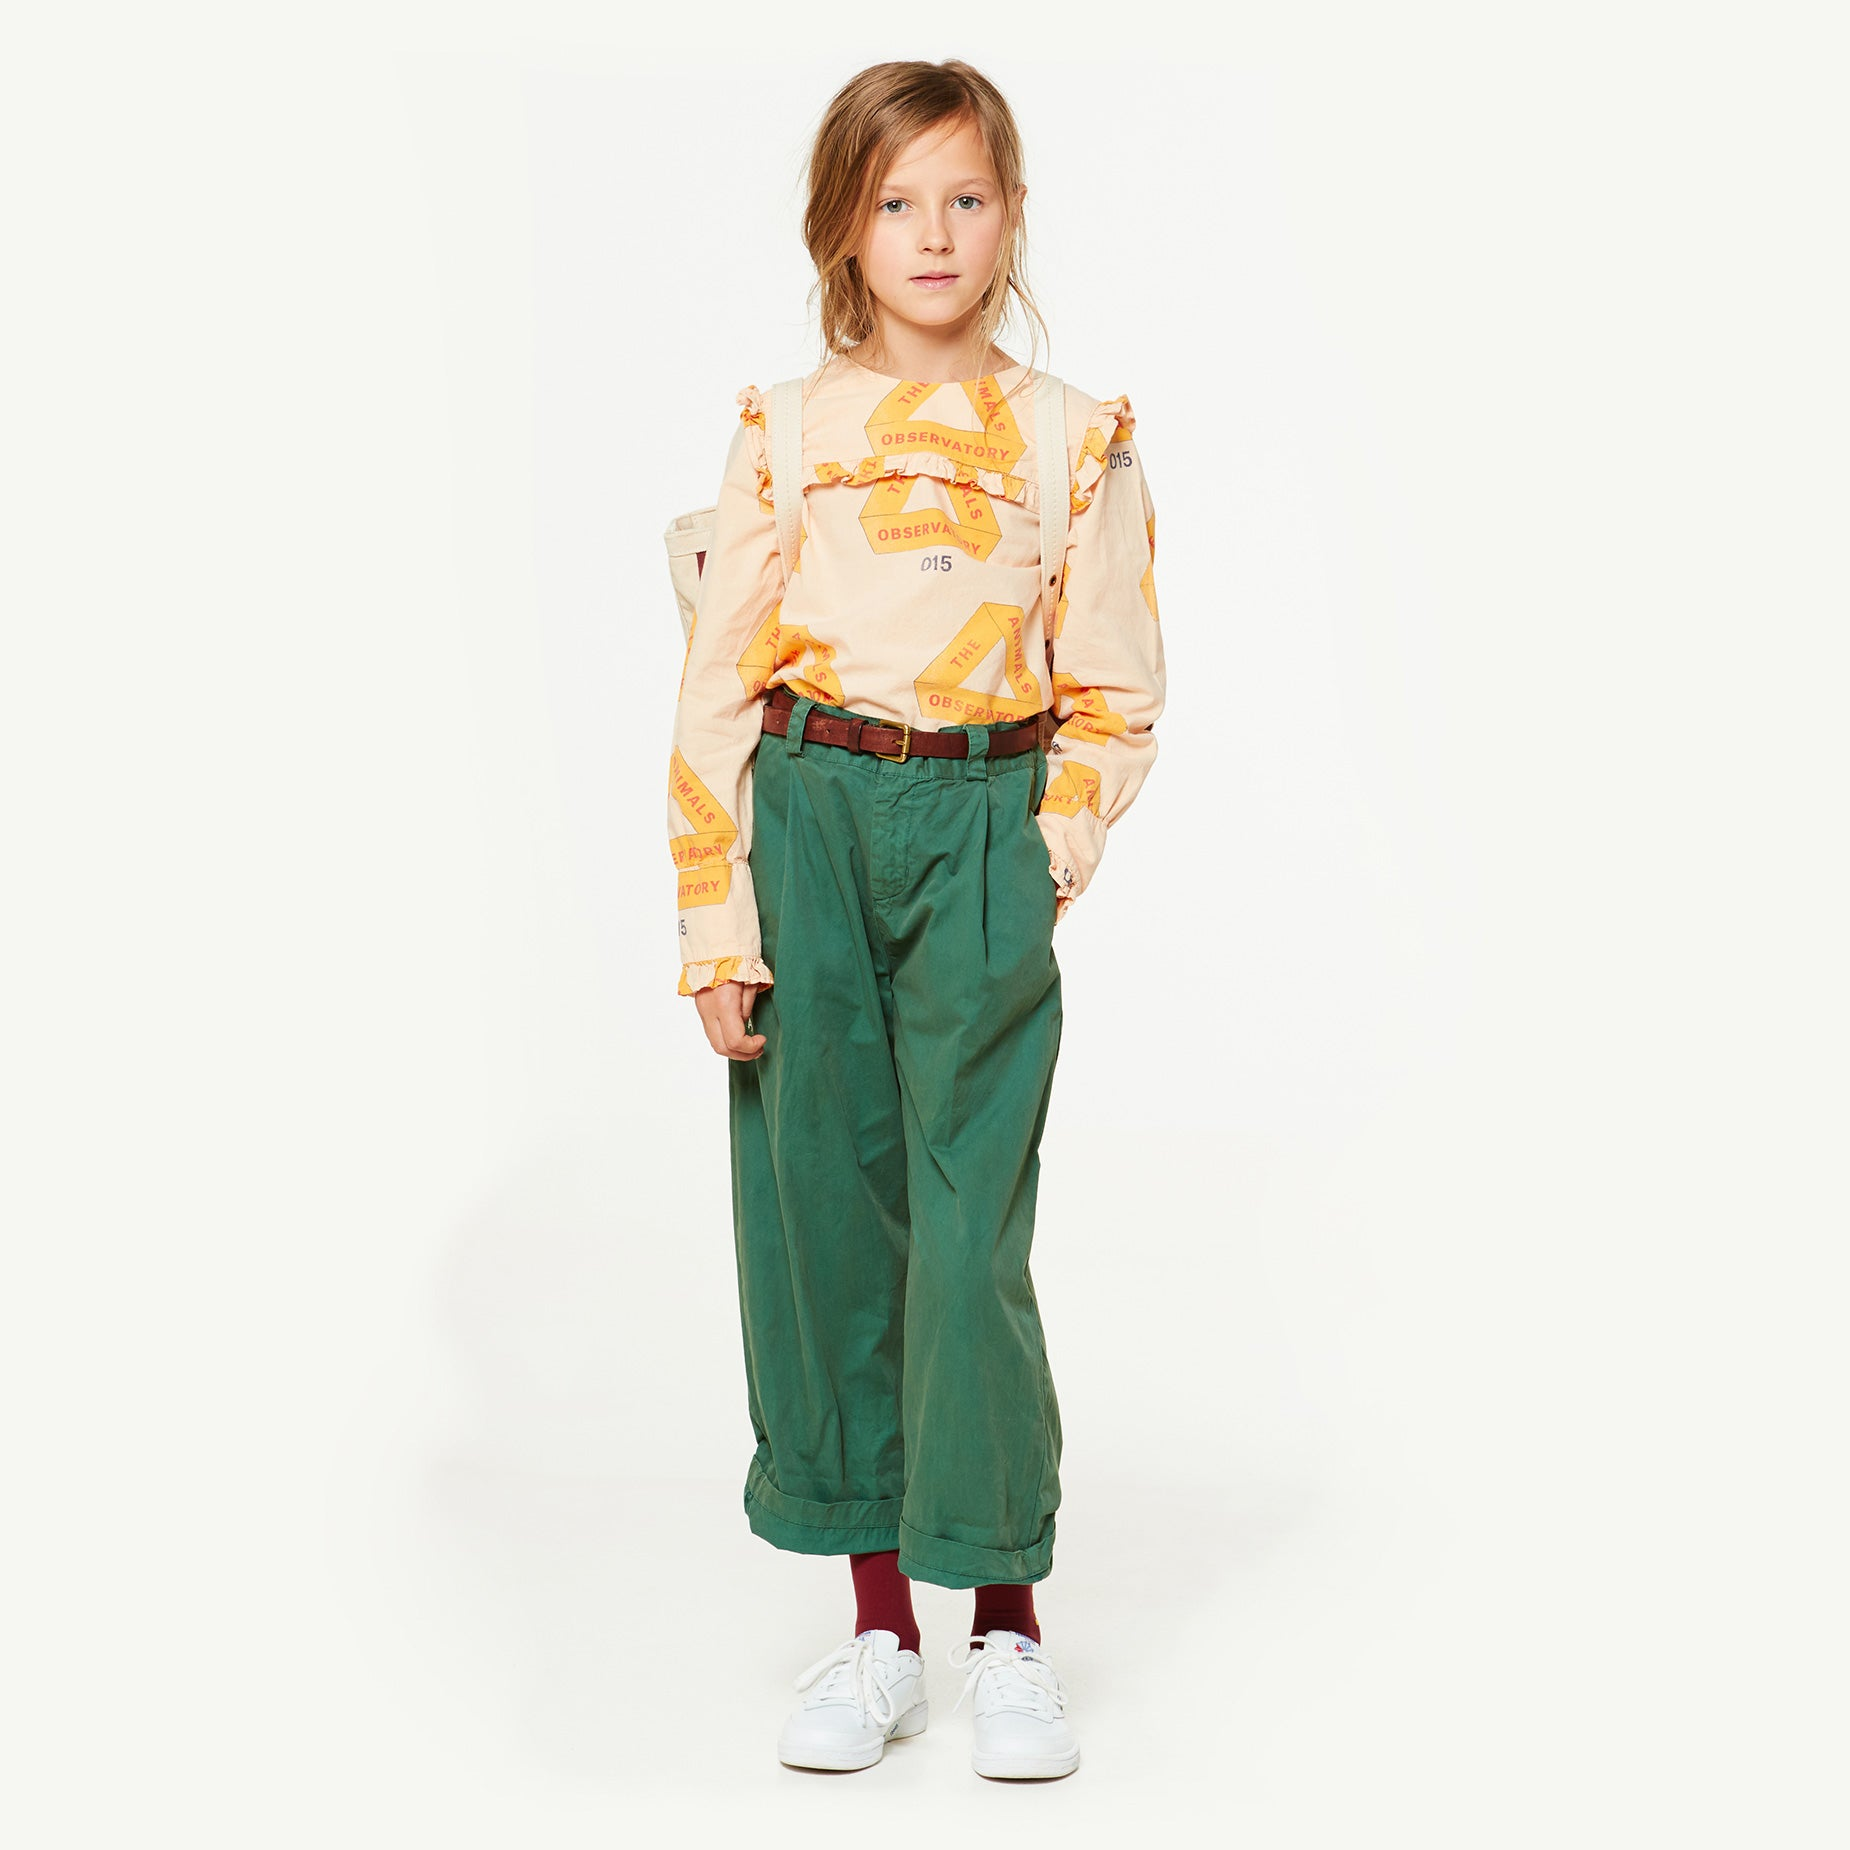 Gadfly Kid's Blouse